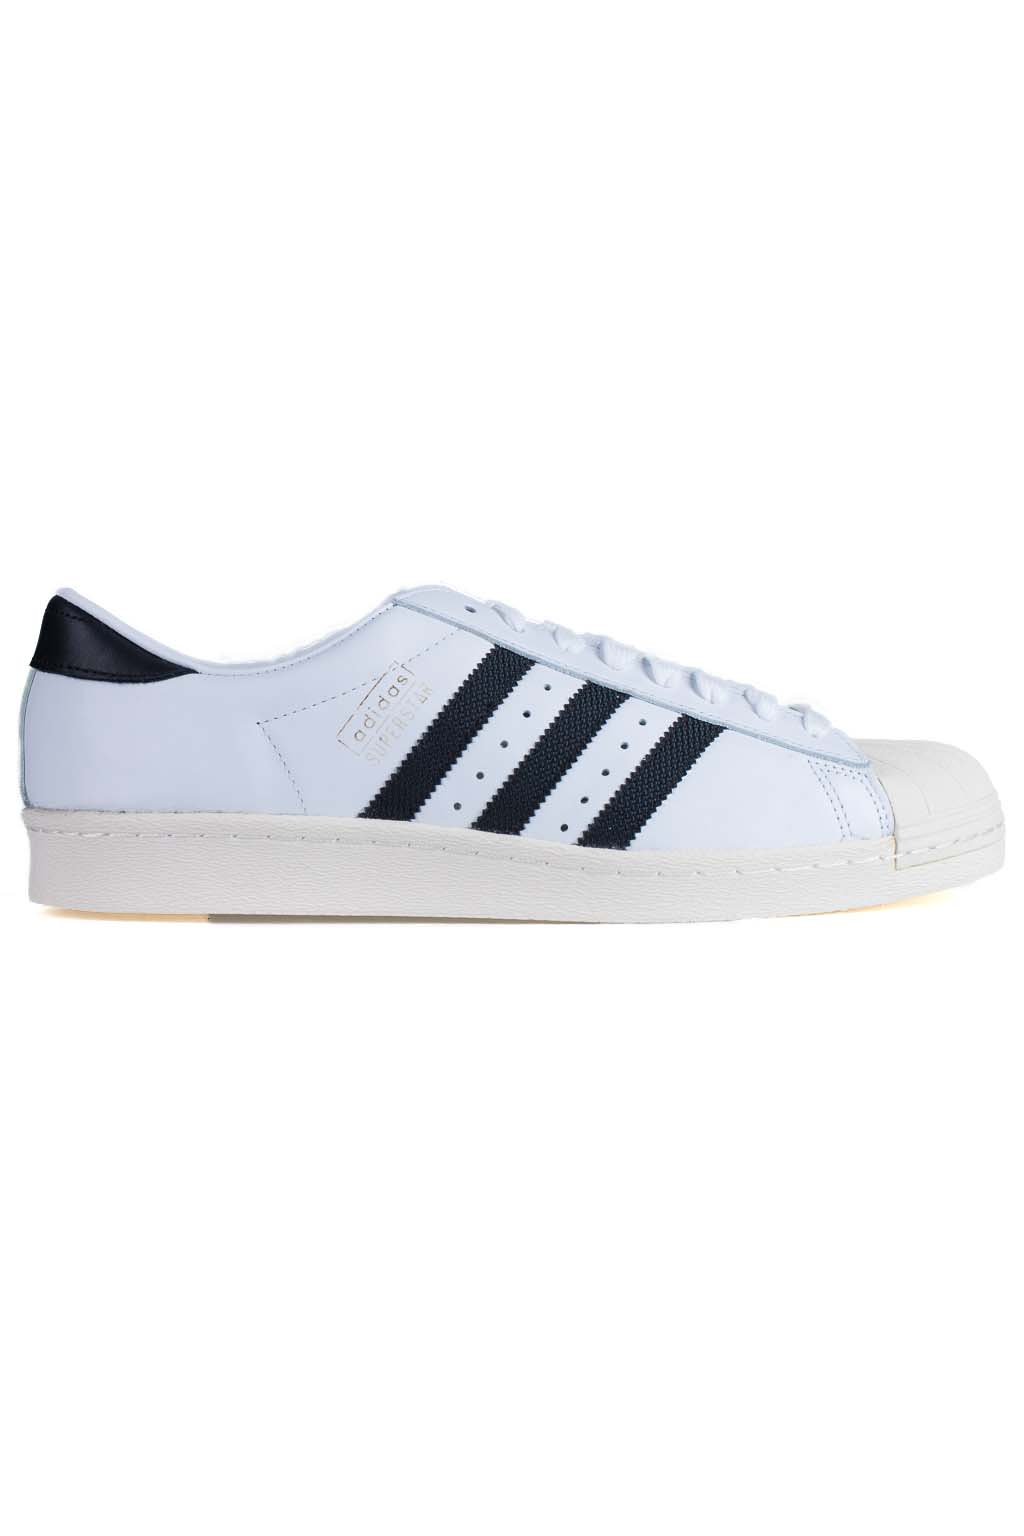 Superstar OG Shoes